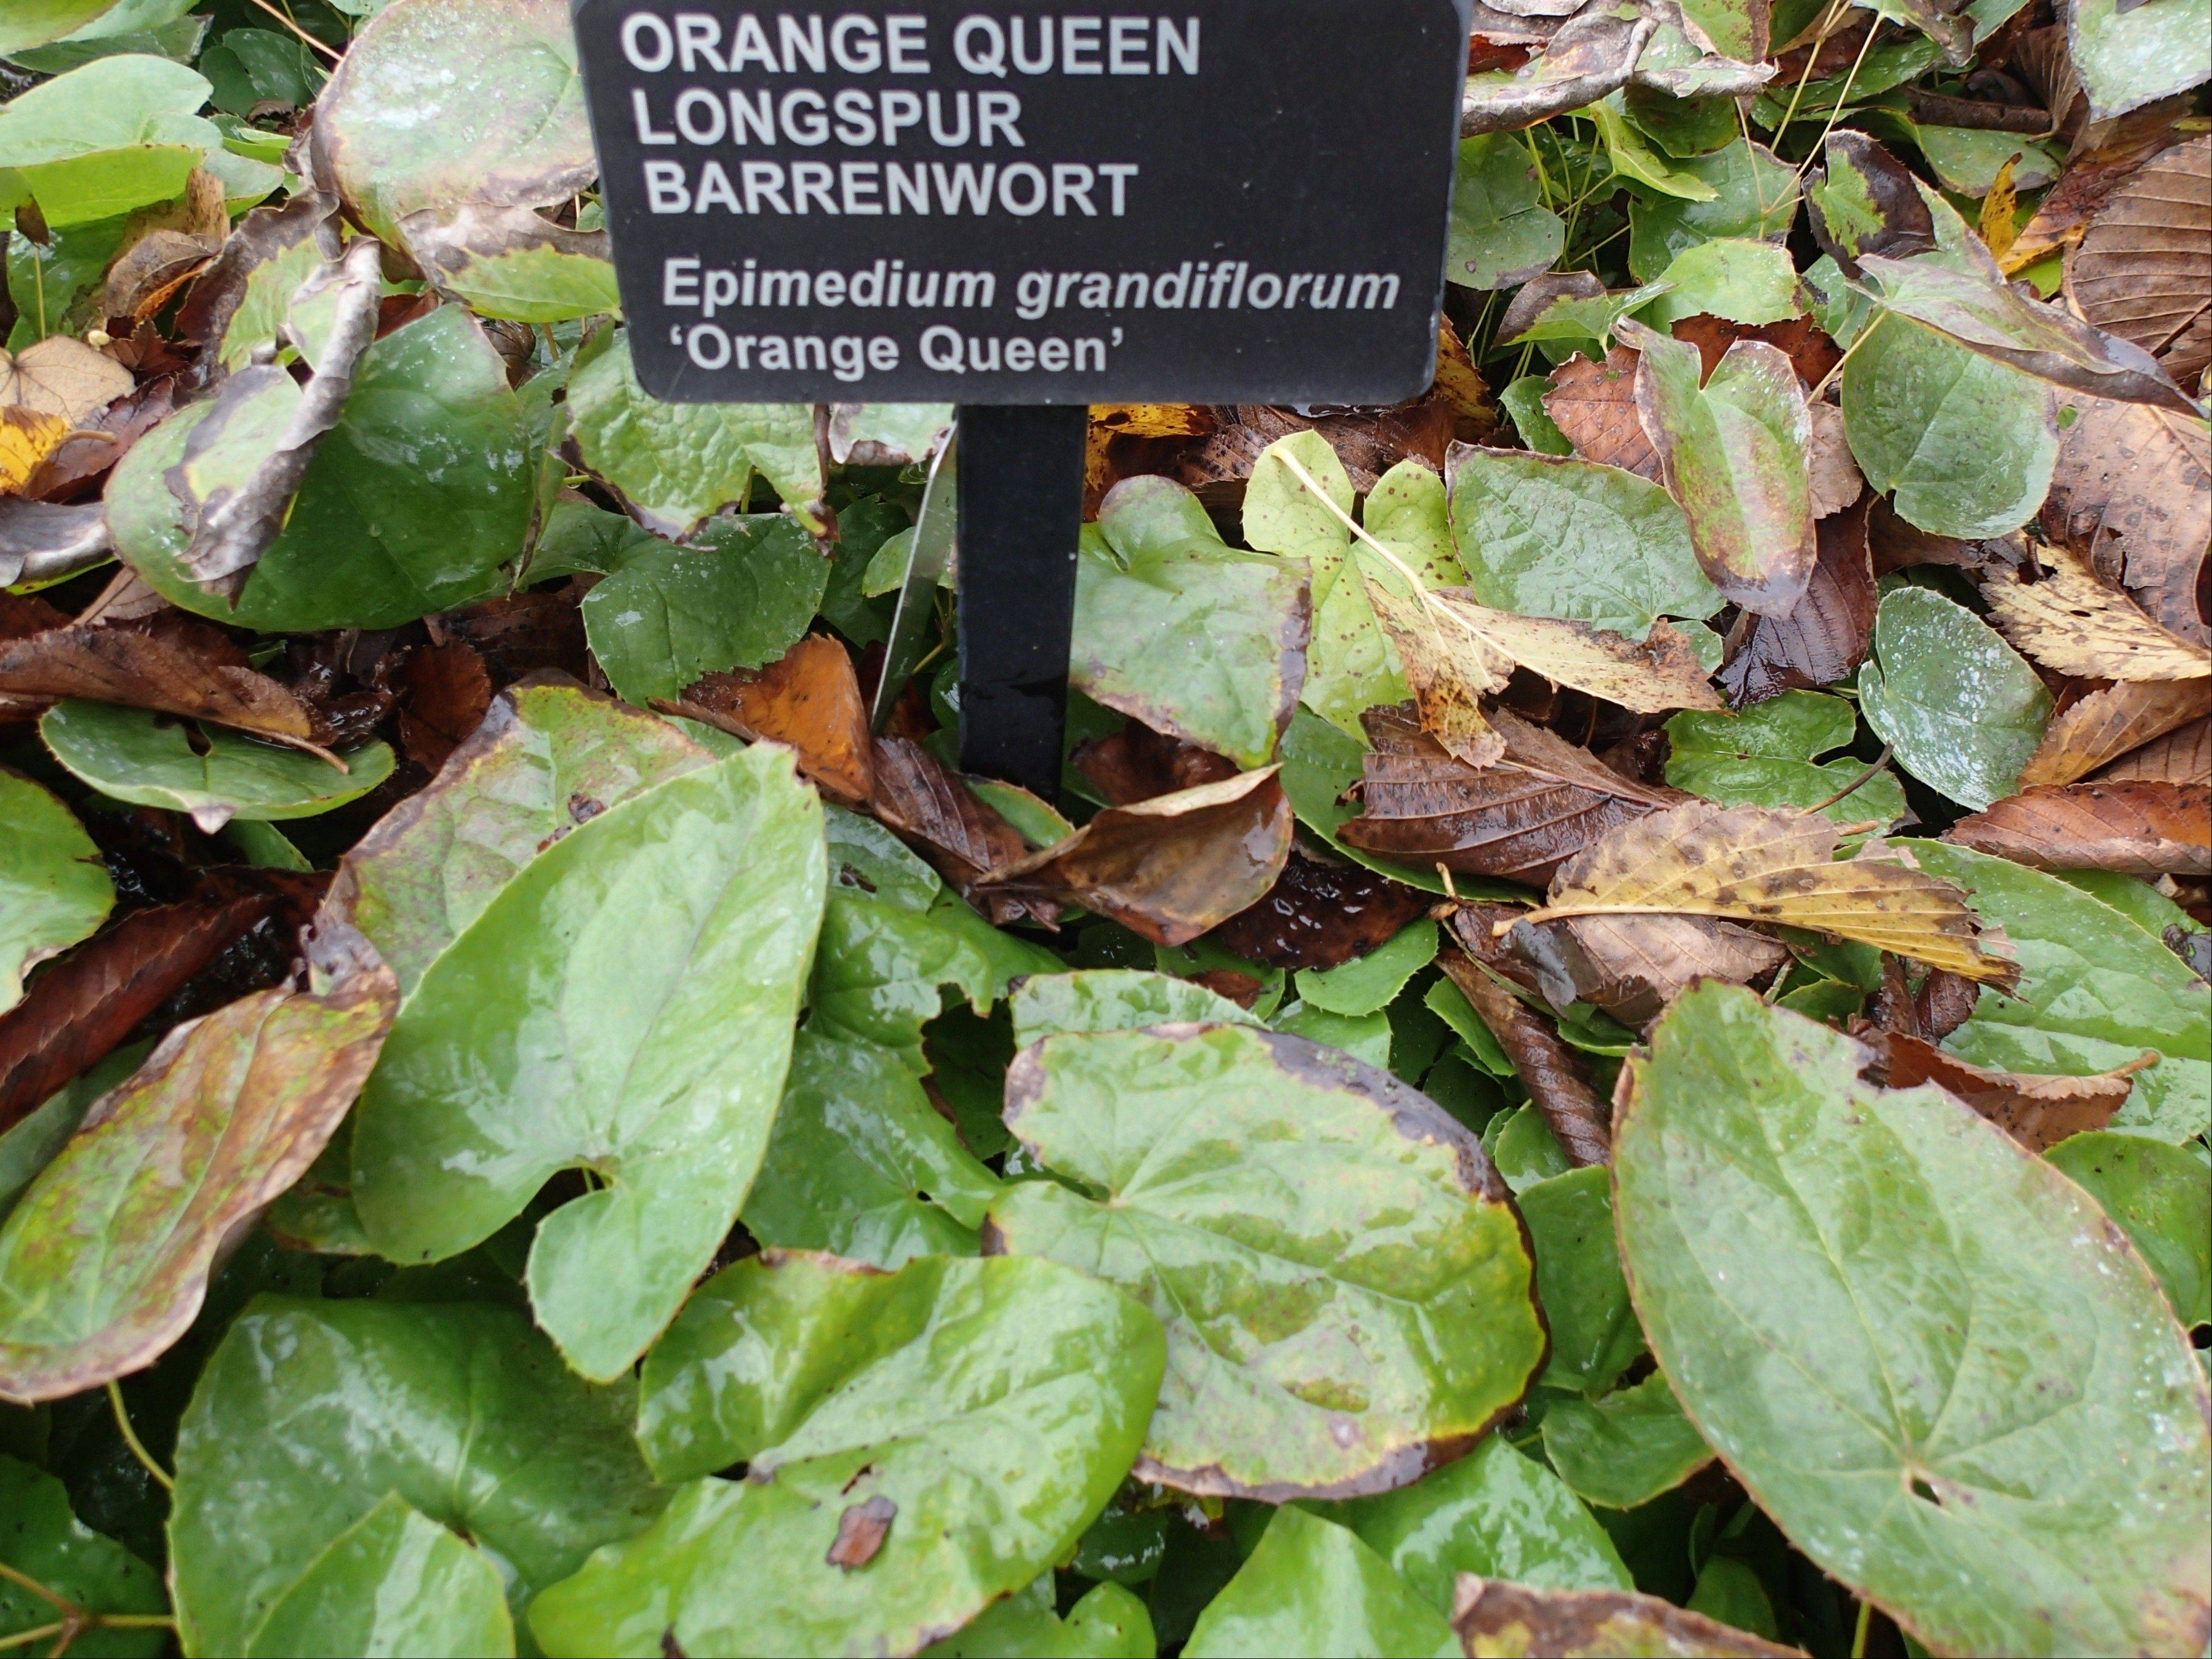 Epimedium, with heart-shaped leaves, is a groundcover that is drought-tolerant.